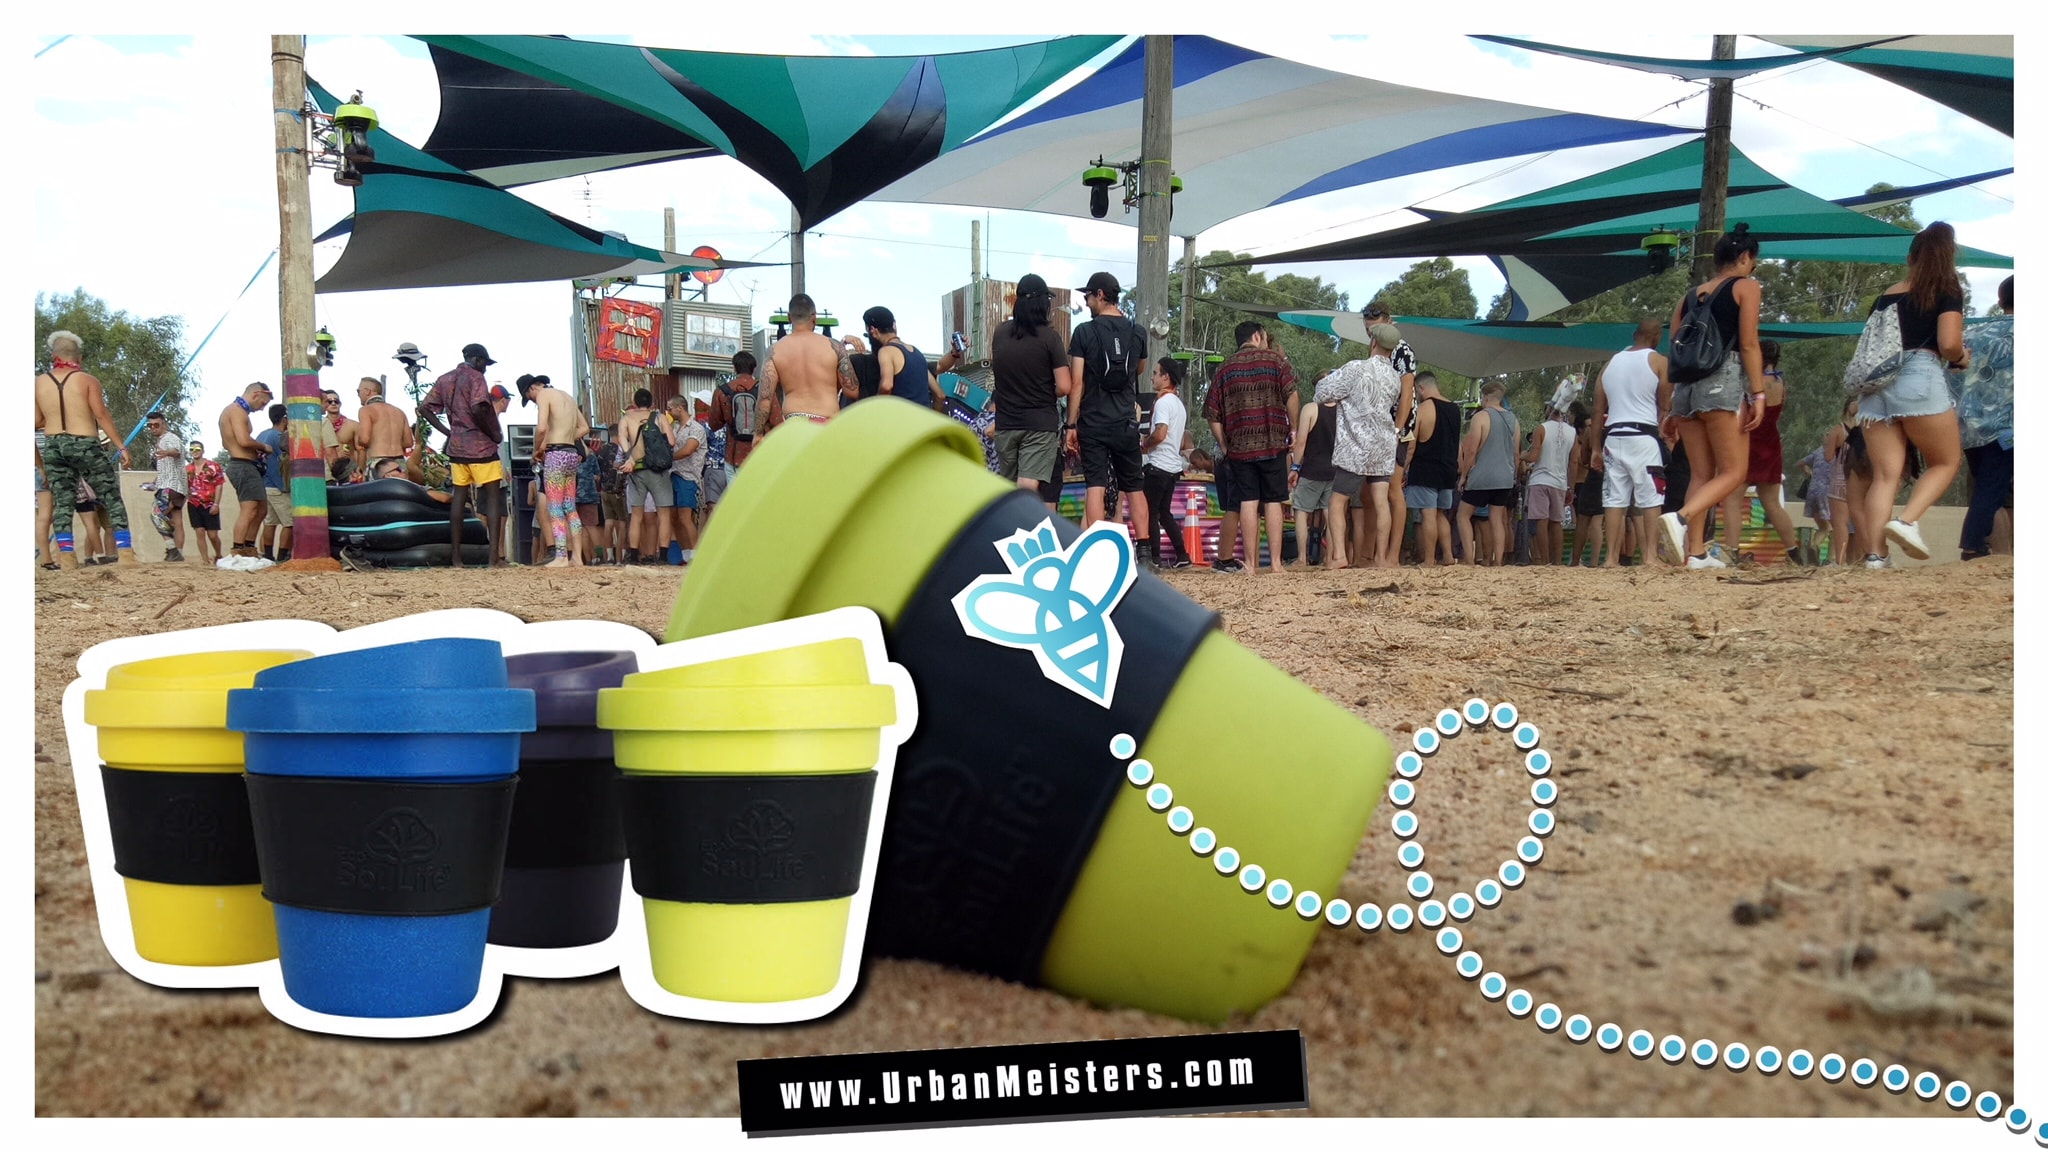 [GREEN MUSIC] Attend music festivals & leave a greener footprint by going Zero waste!